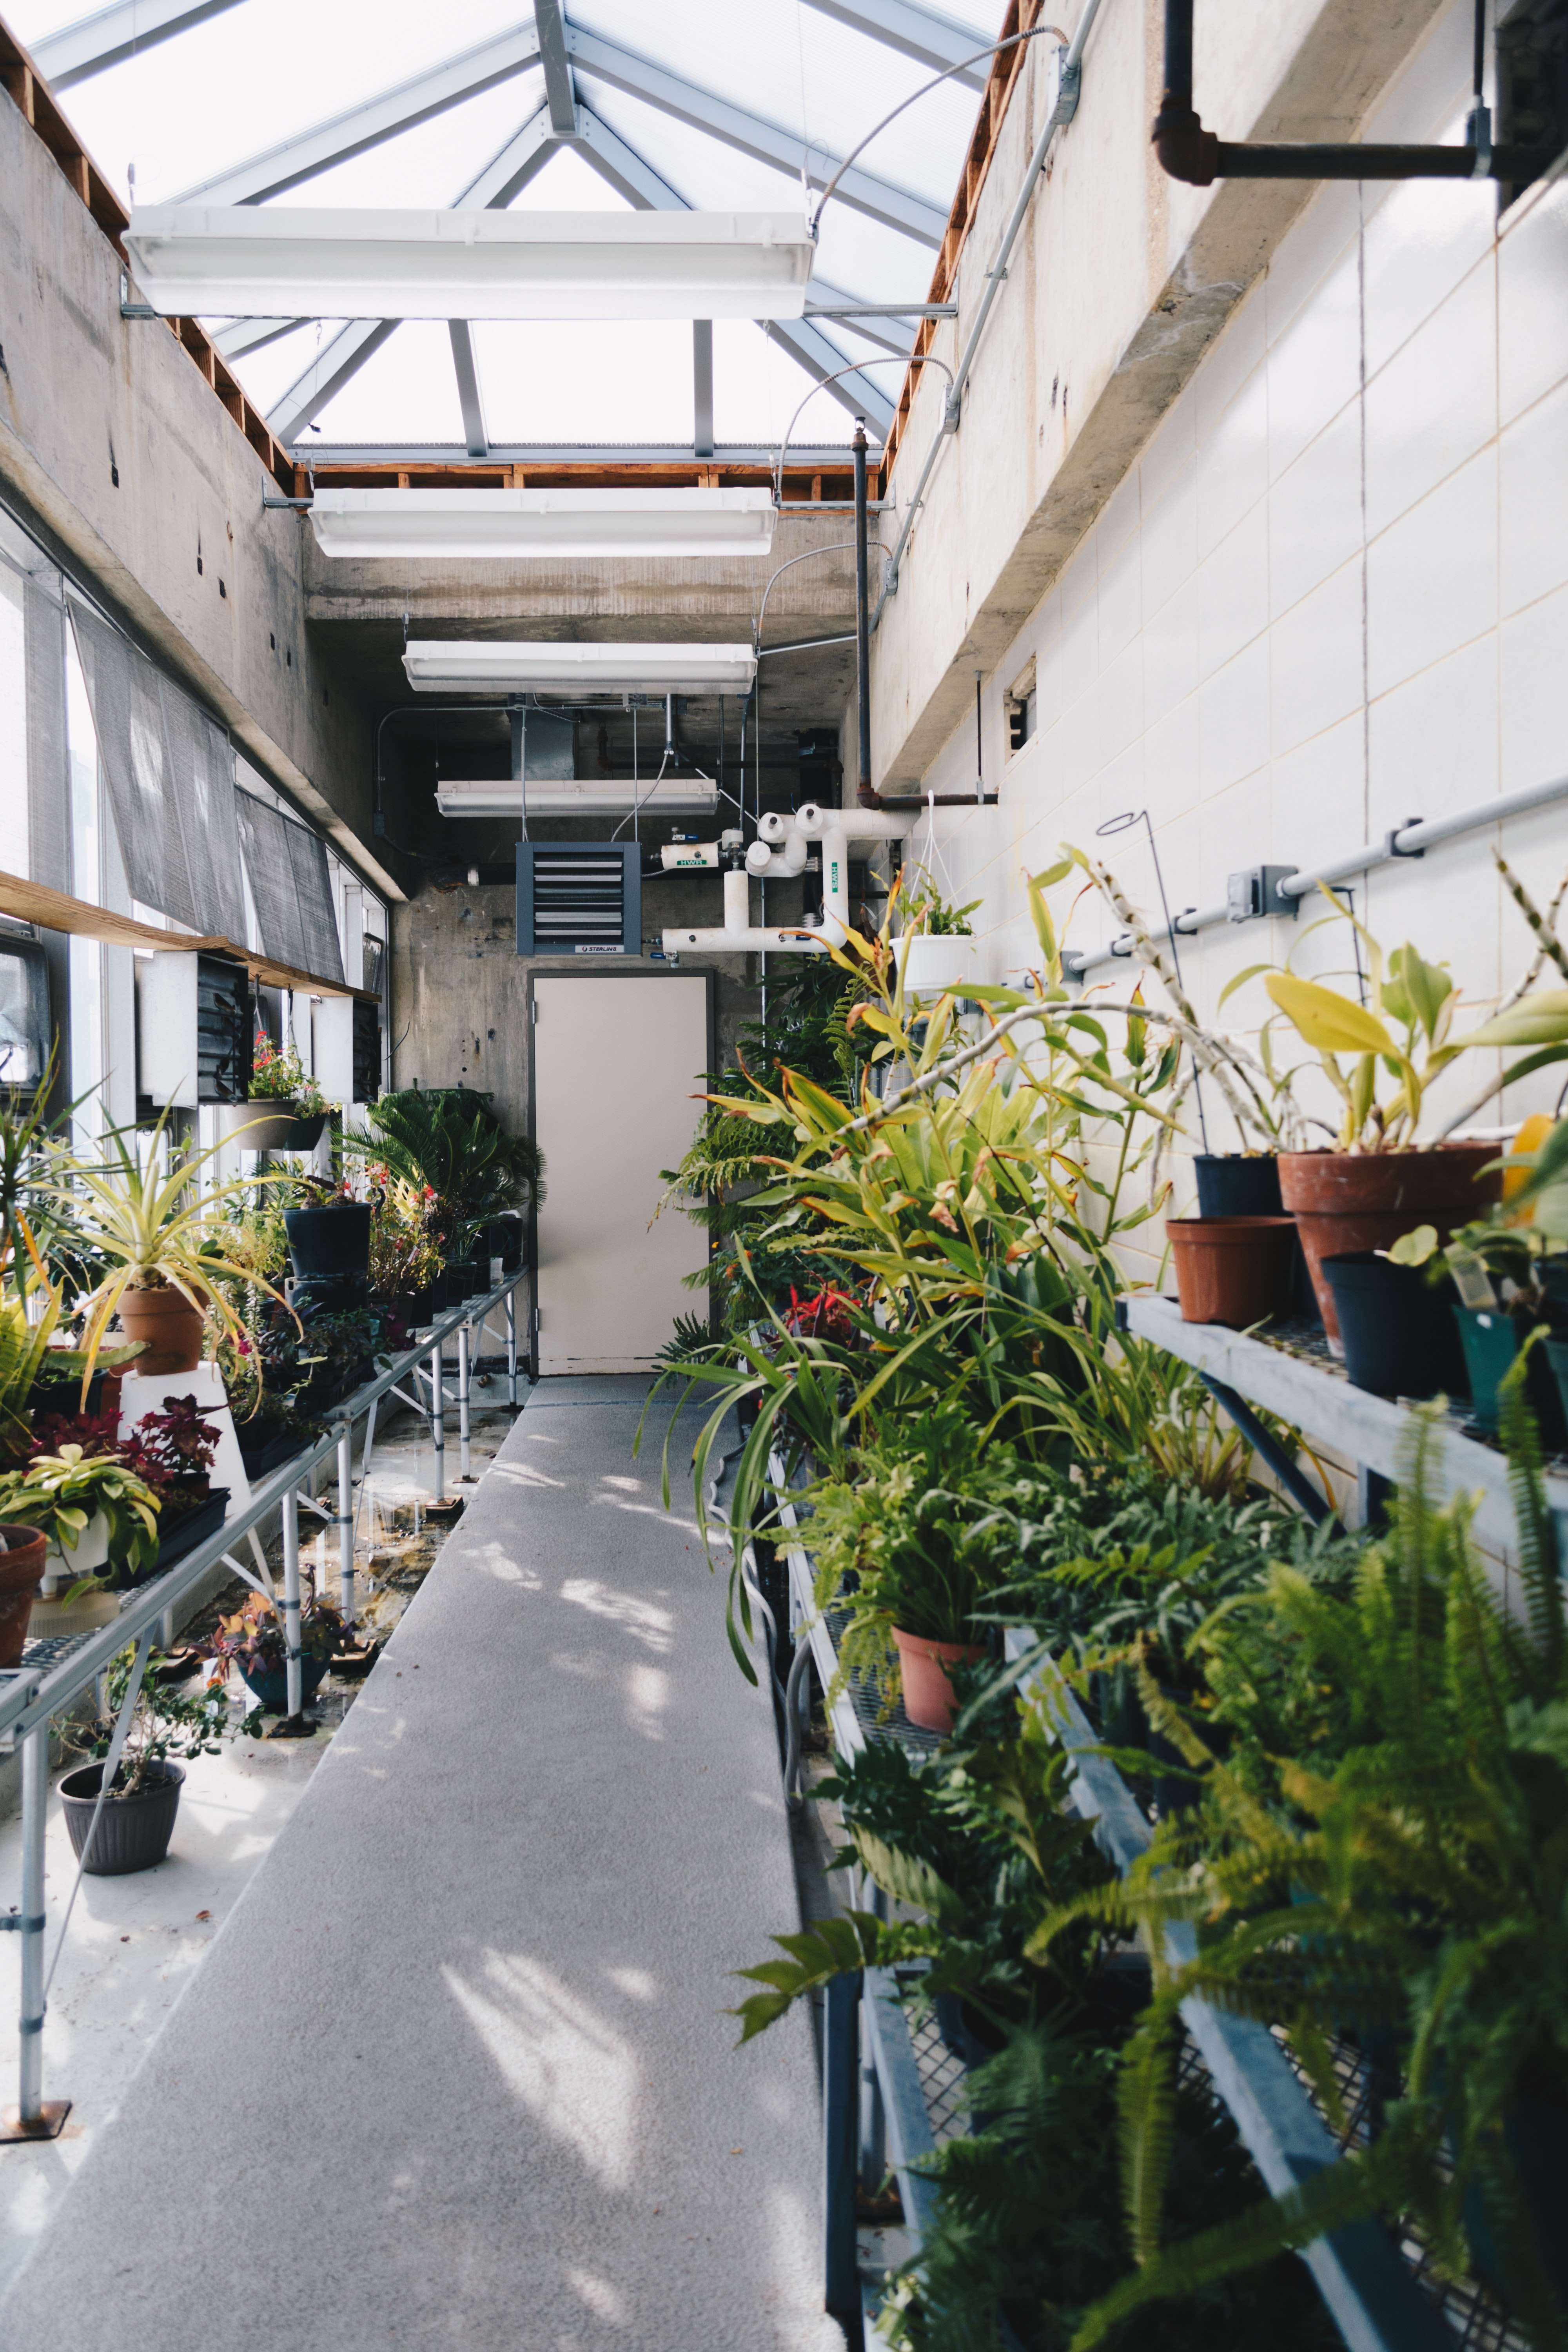 Potted plants on shelves in a greenhouse